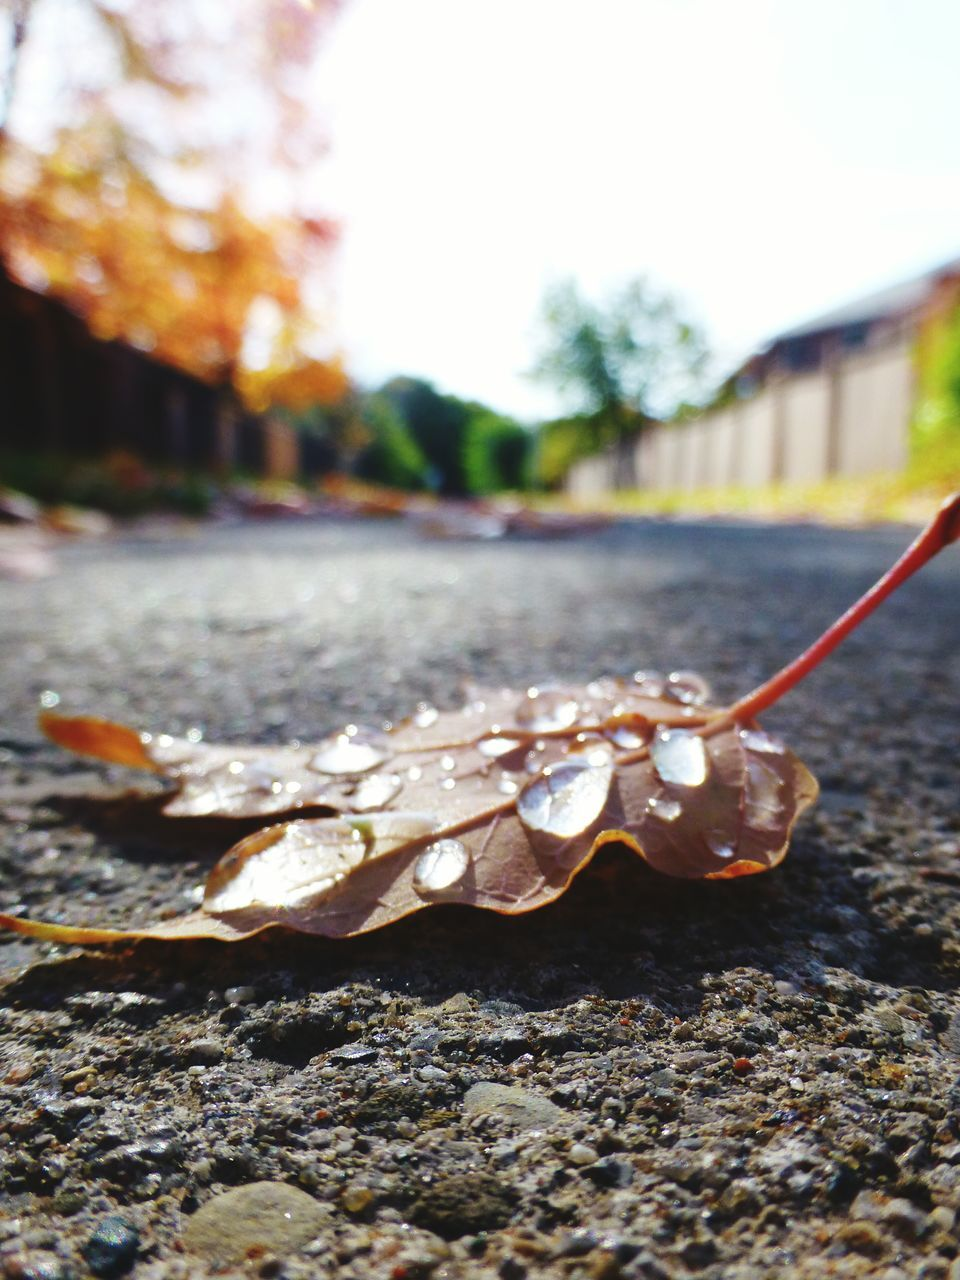 no people, outdoors, close-up, day, nature, leaf, animal themes, tree